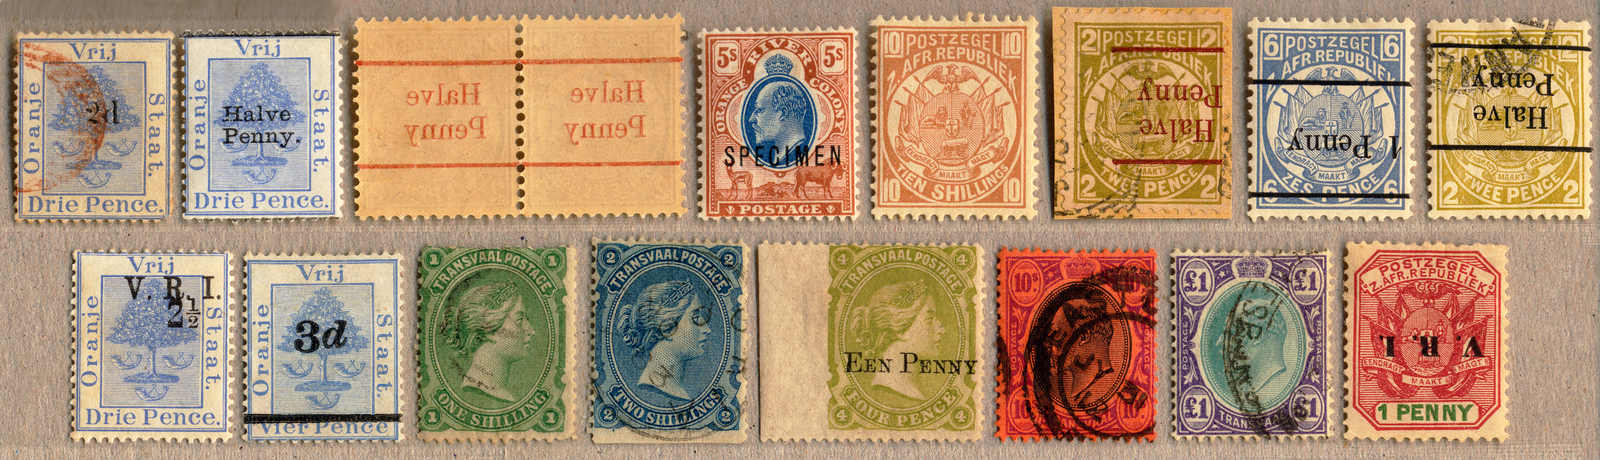 Lot 20761 - south africa Collections and Lots South Africa Homelands -  classicphil GmbH 3 rd classicphil Auction - VIENNA- AUSTRIA